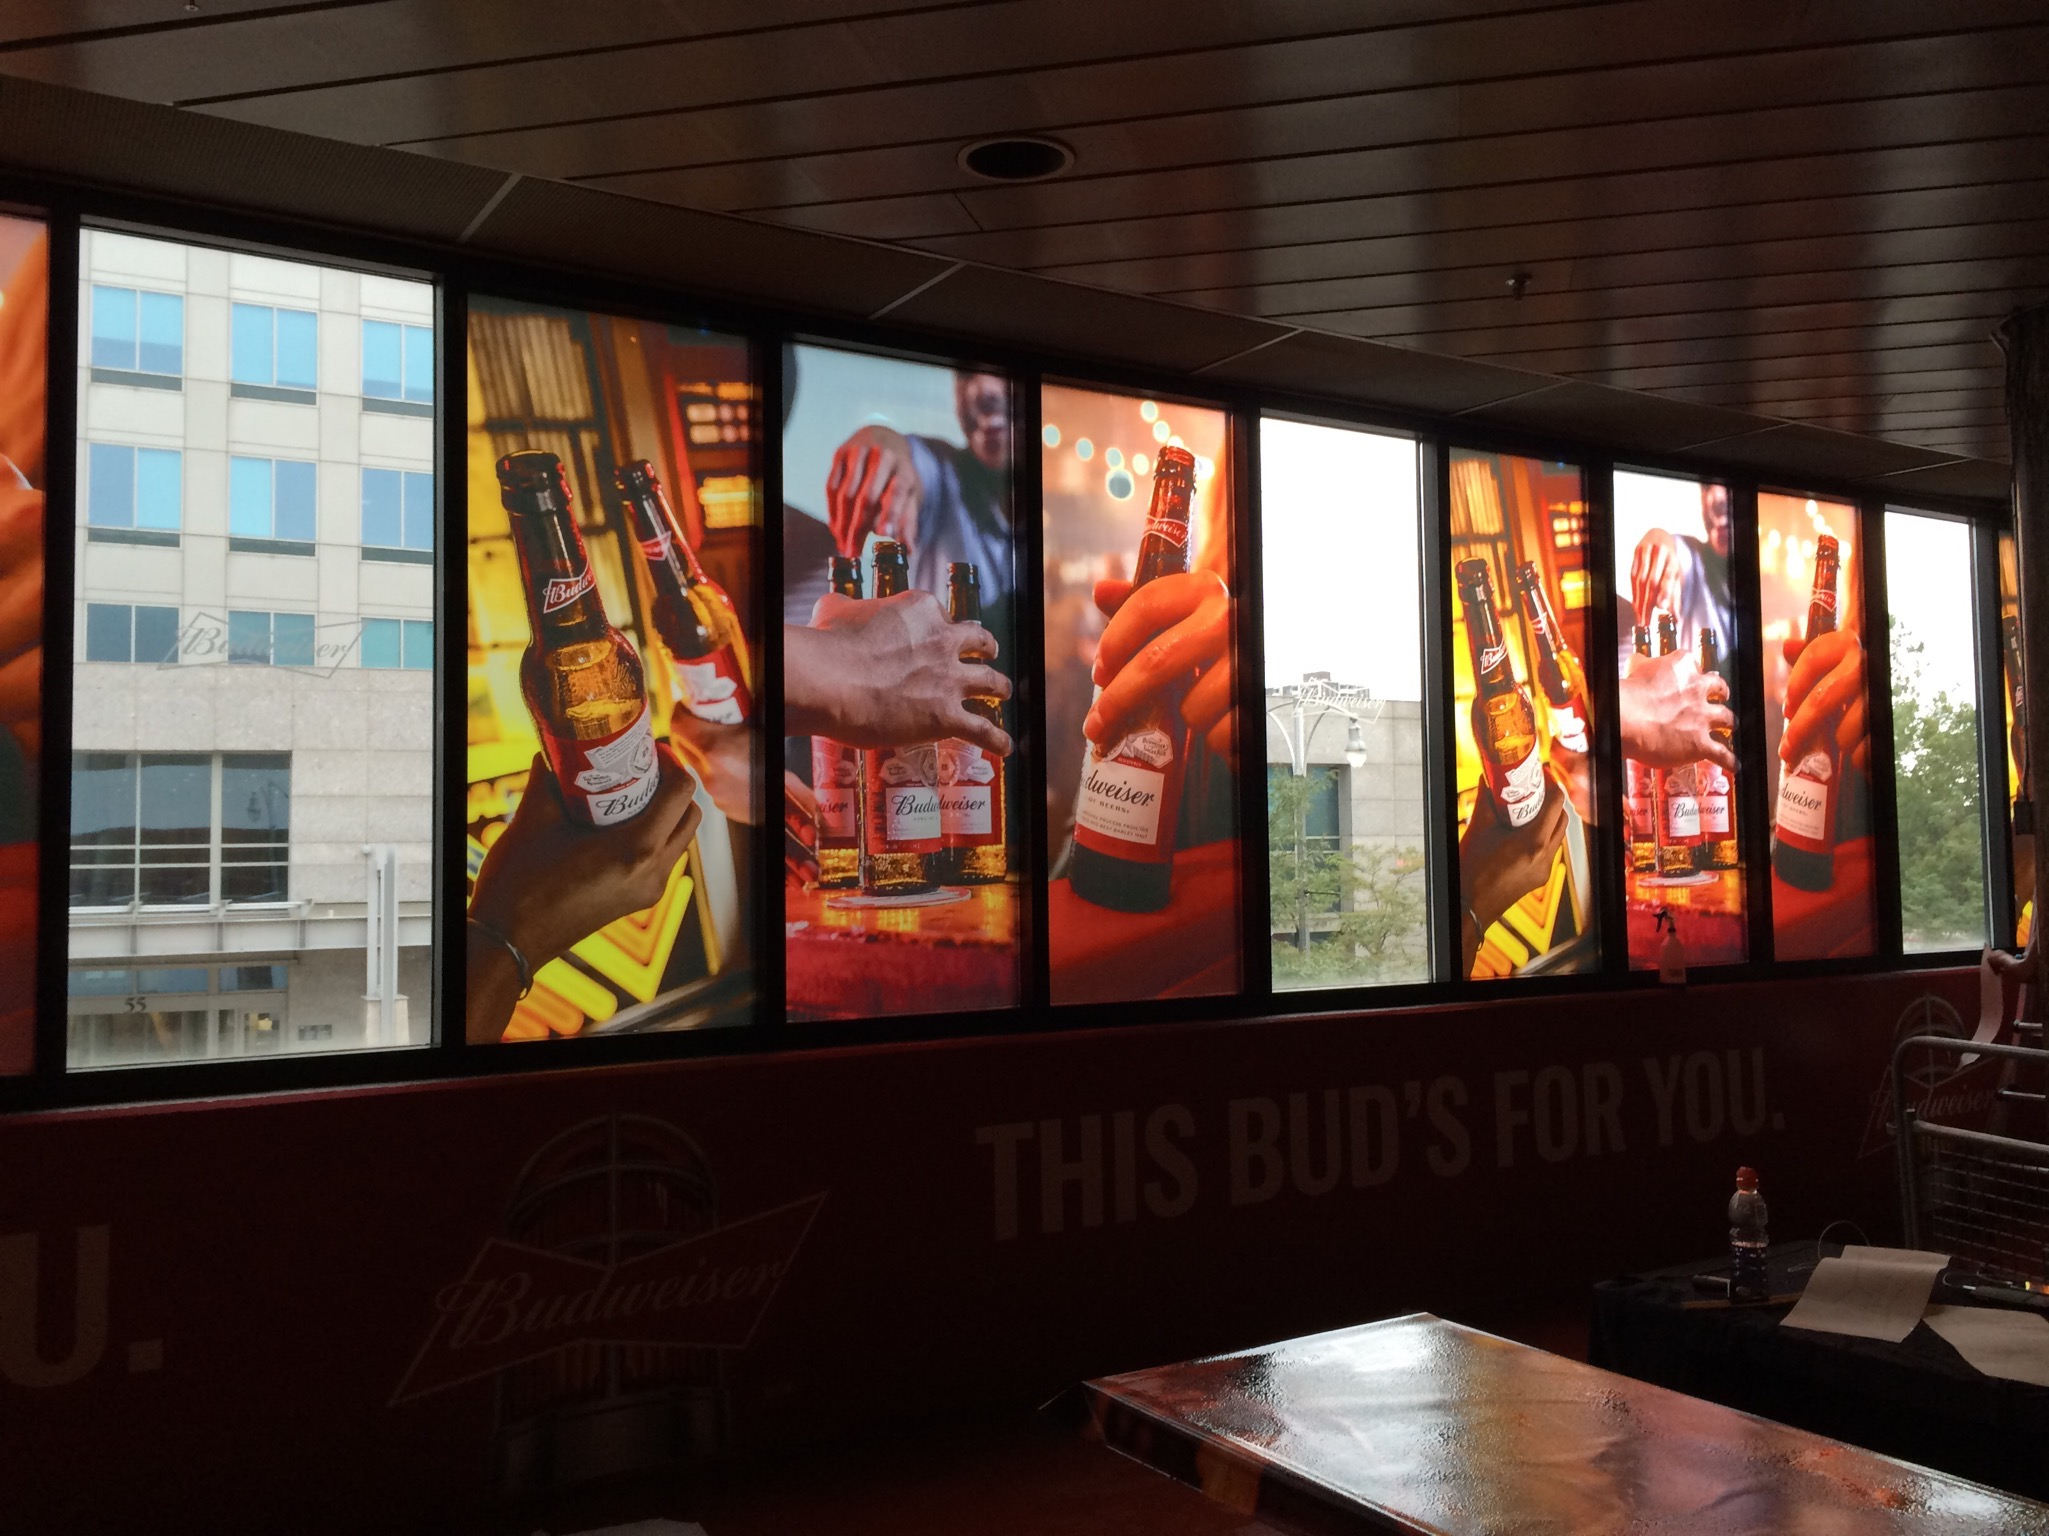 Budweiser window graphics at First Ontario Centre, Hamilton